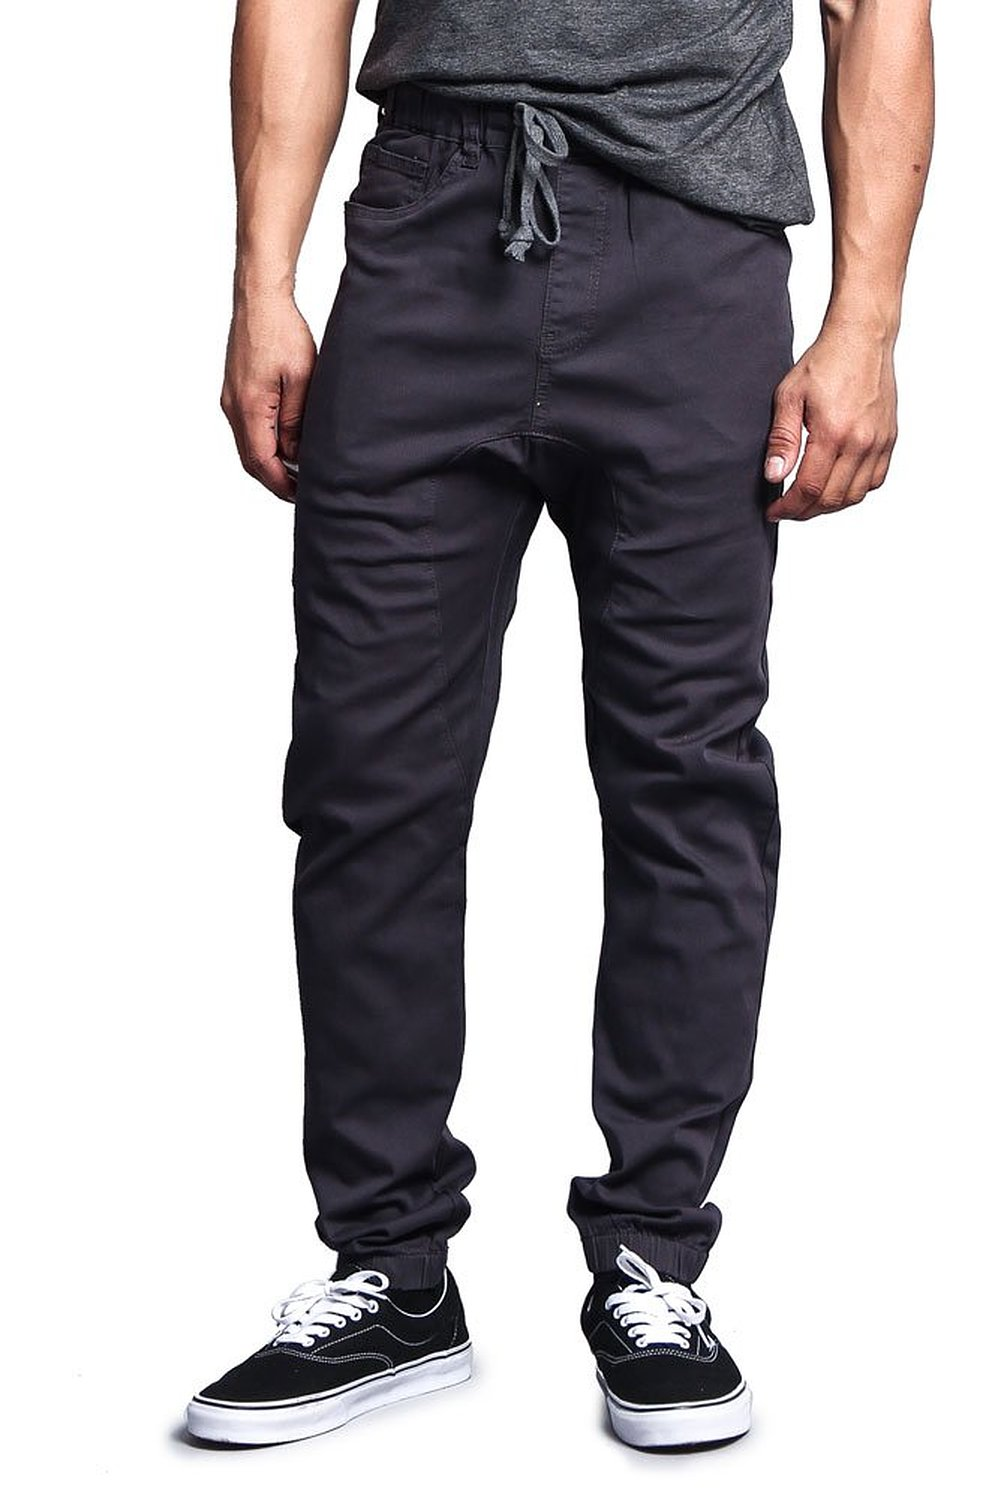 AE X MTV Jogger Pant $ Launch product AE X MTV Jogger Pant $ Launch product quickview. removed! Khaki Joggers. New Online Only AE Twill Jogger Regular Price $ Sale Price $ Launch product quickview. removed! New Online Only Exercise your right to style and comfort with Joggers at American .